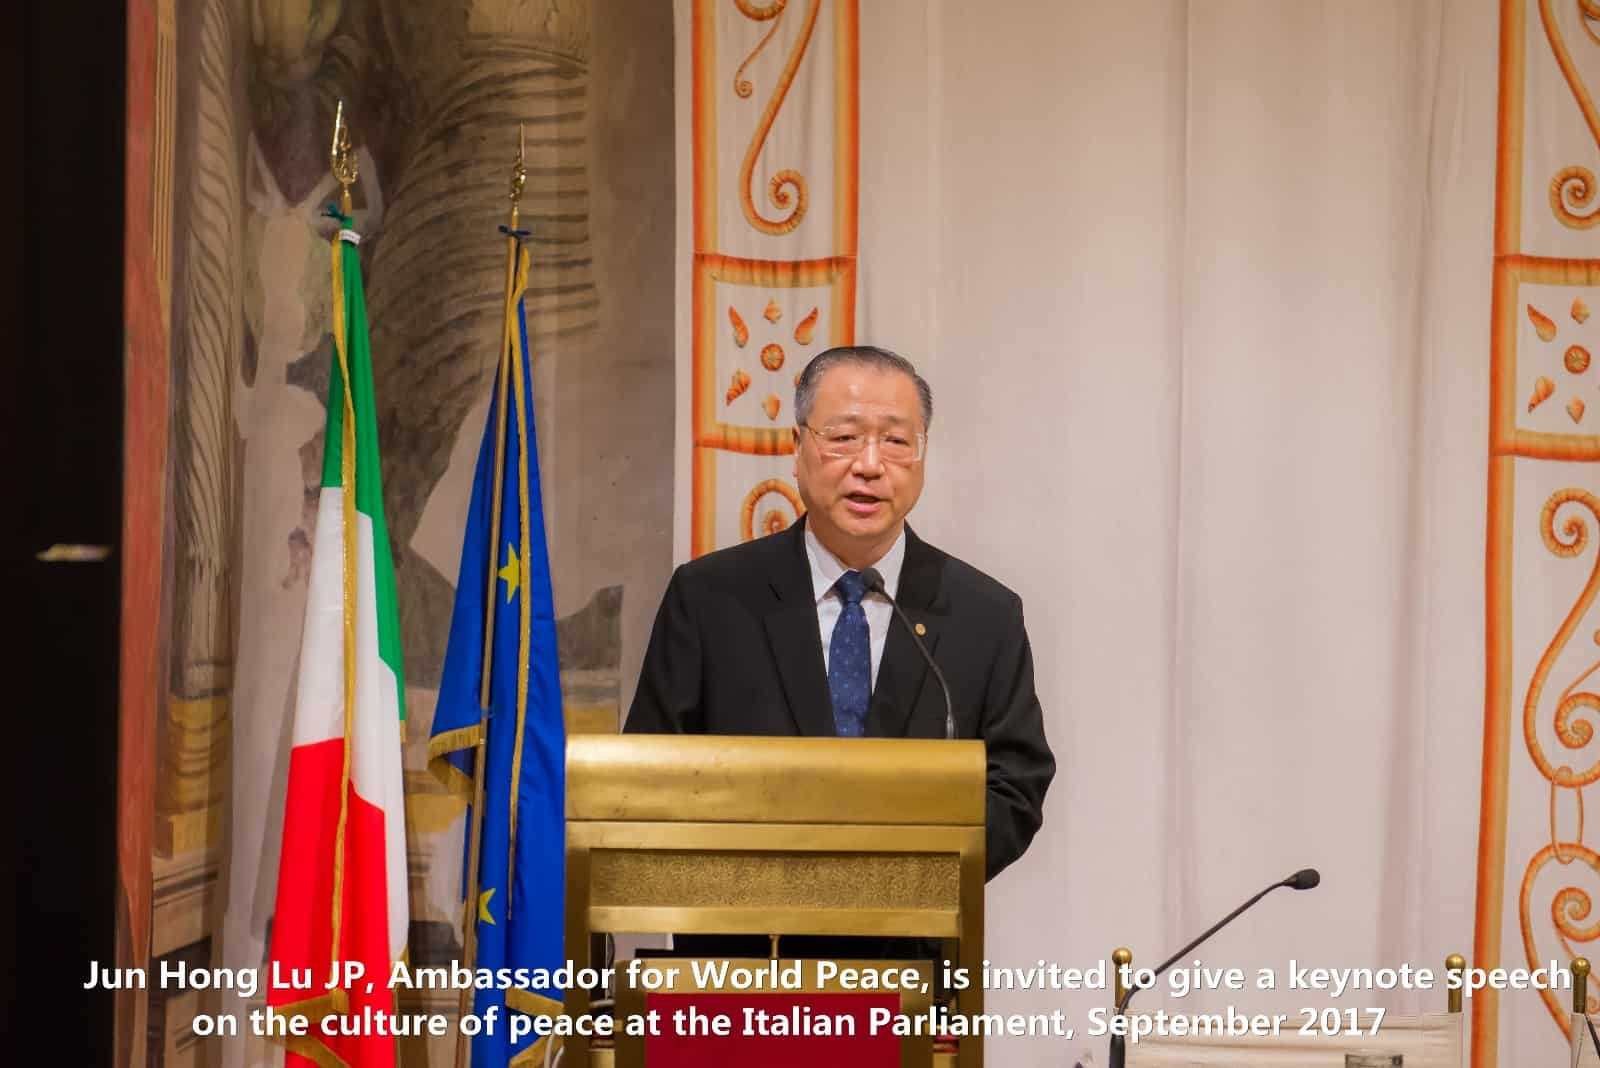 Master Lu is invited to give a keynote speech on the culture of peace at the Italian Parliament, September 2017